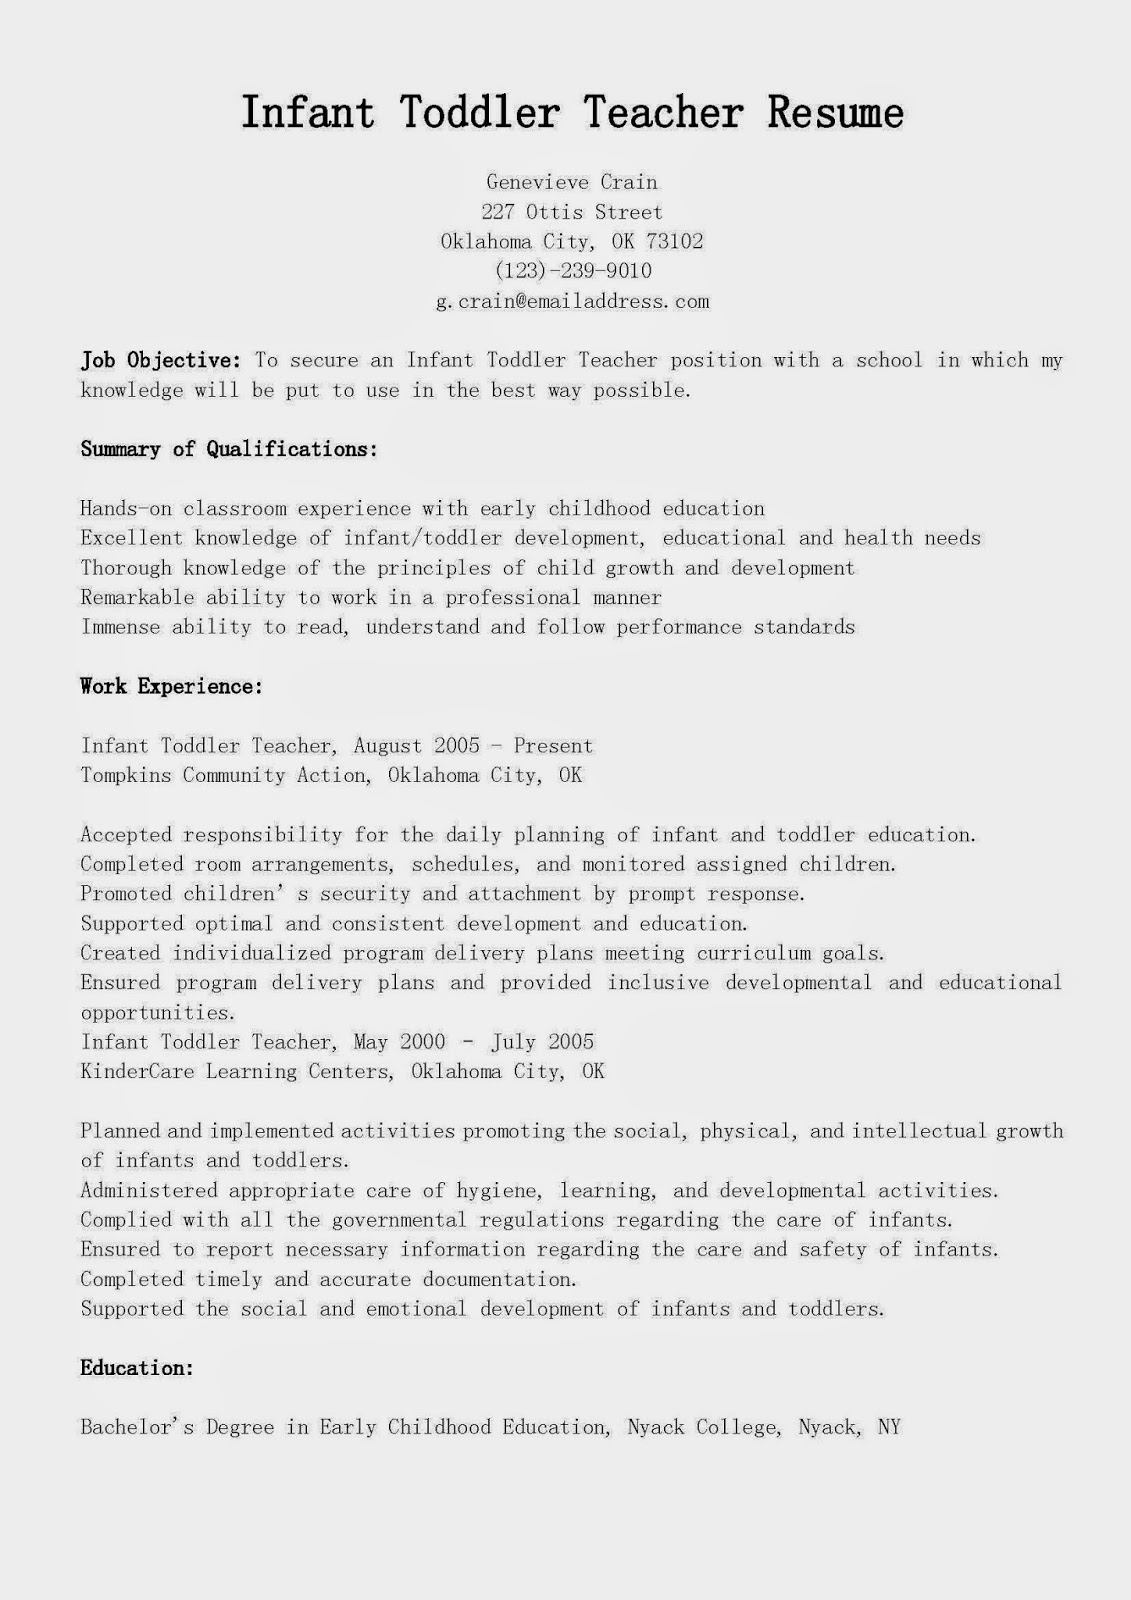 assistant educator resume samples early childhood education resume assistant educator resume samples early childhood education resume - Early Childhood Education Resume Samples